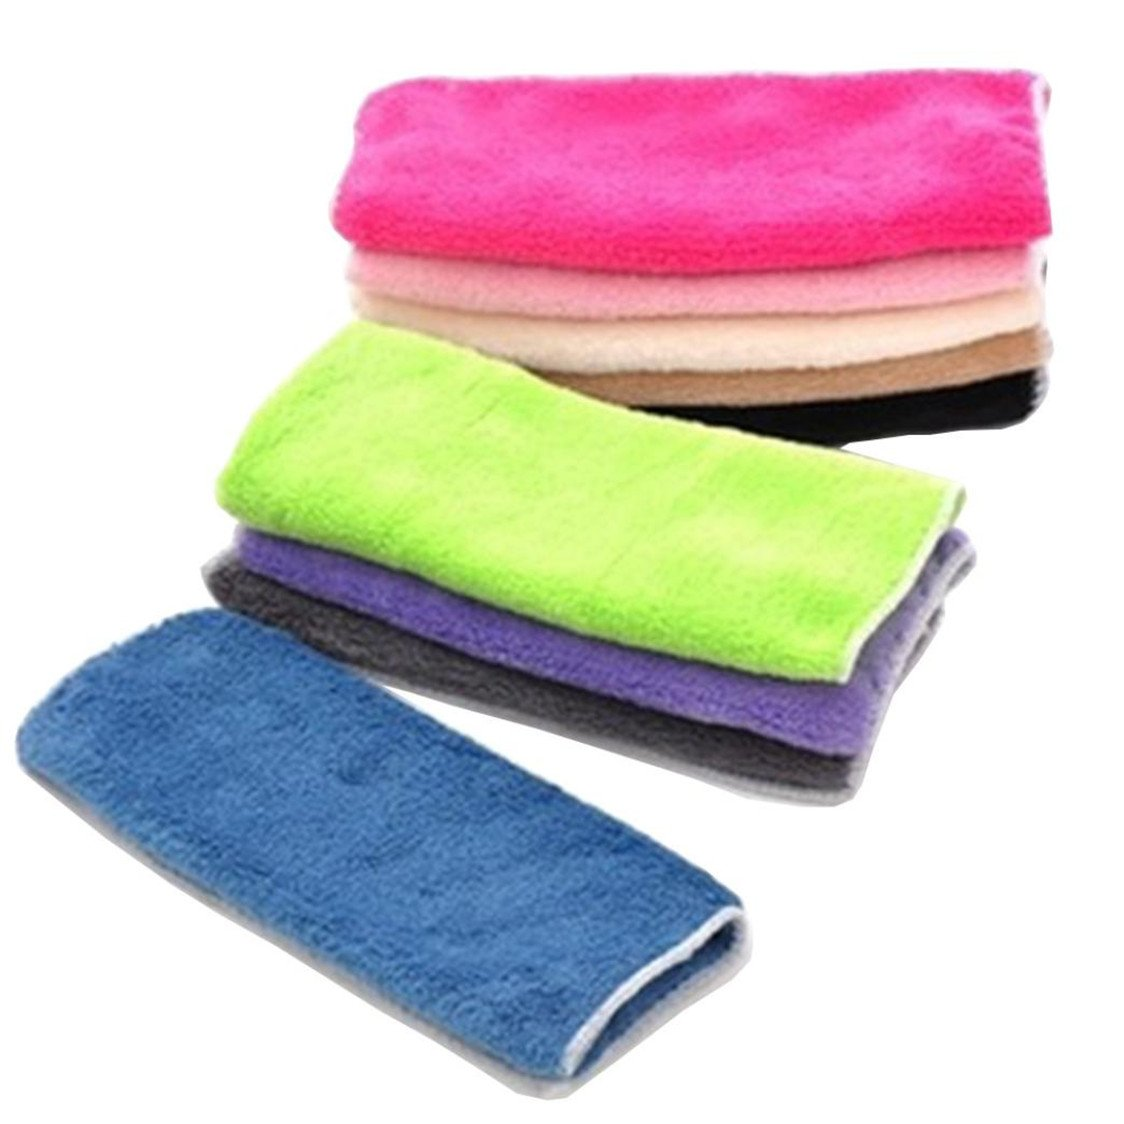 TIFENNY 1 PC High Efficient Anti-grease Color Dish Cloth Bamboo Fiber Washing Towel Magic Kitchen Cleaning Wiping Rags (random)